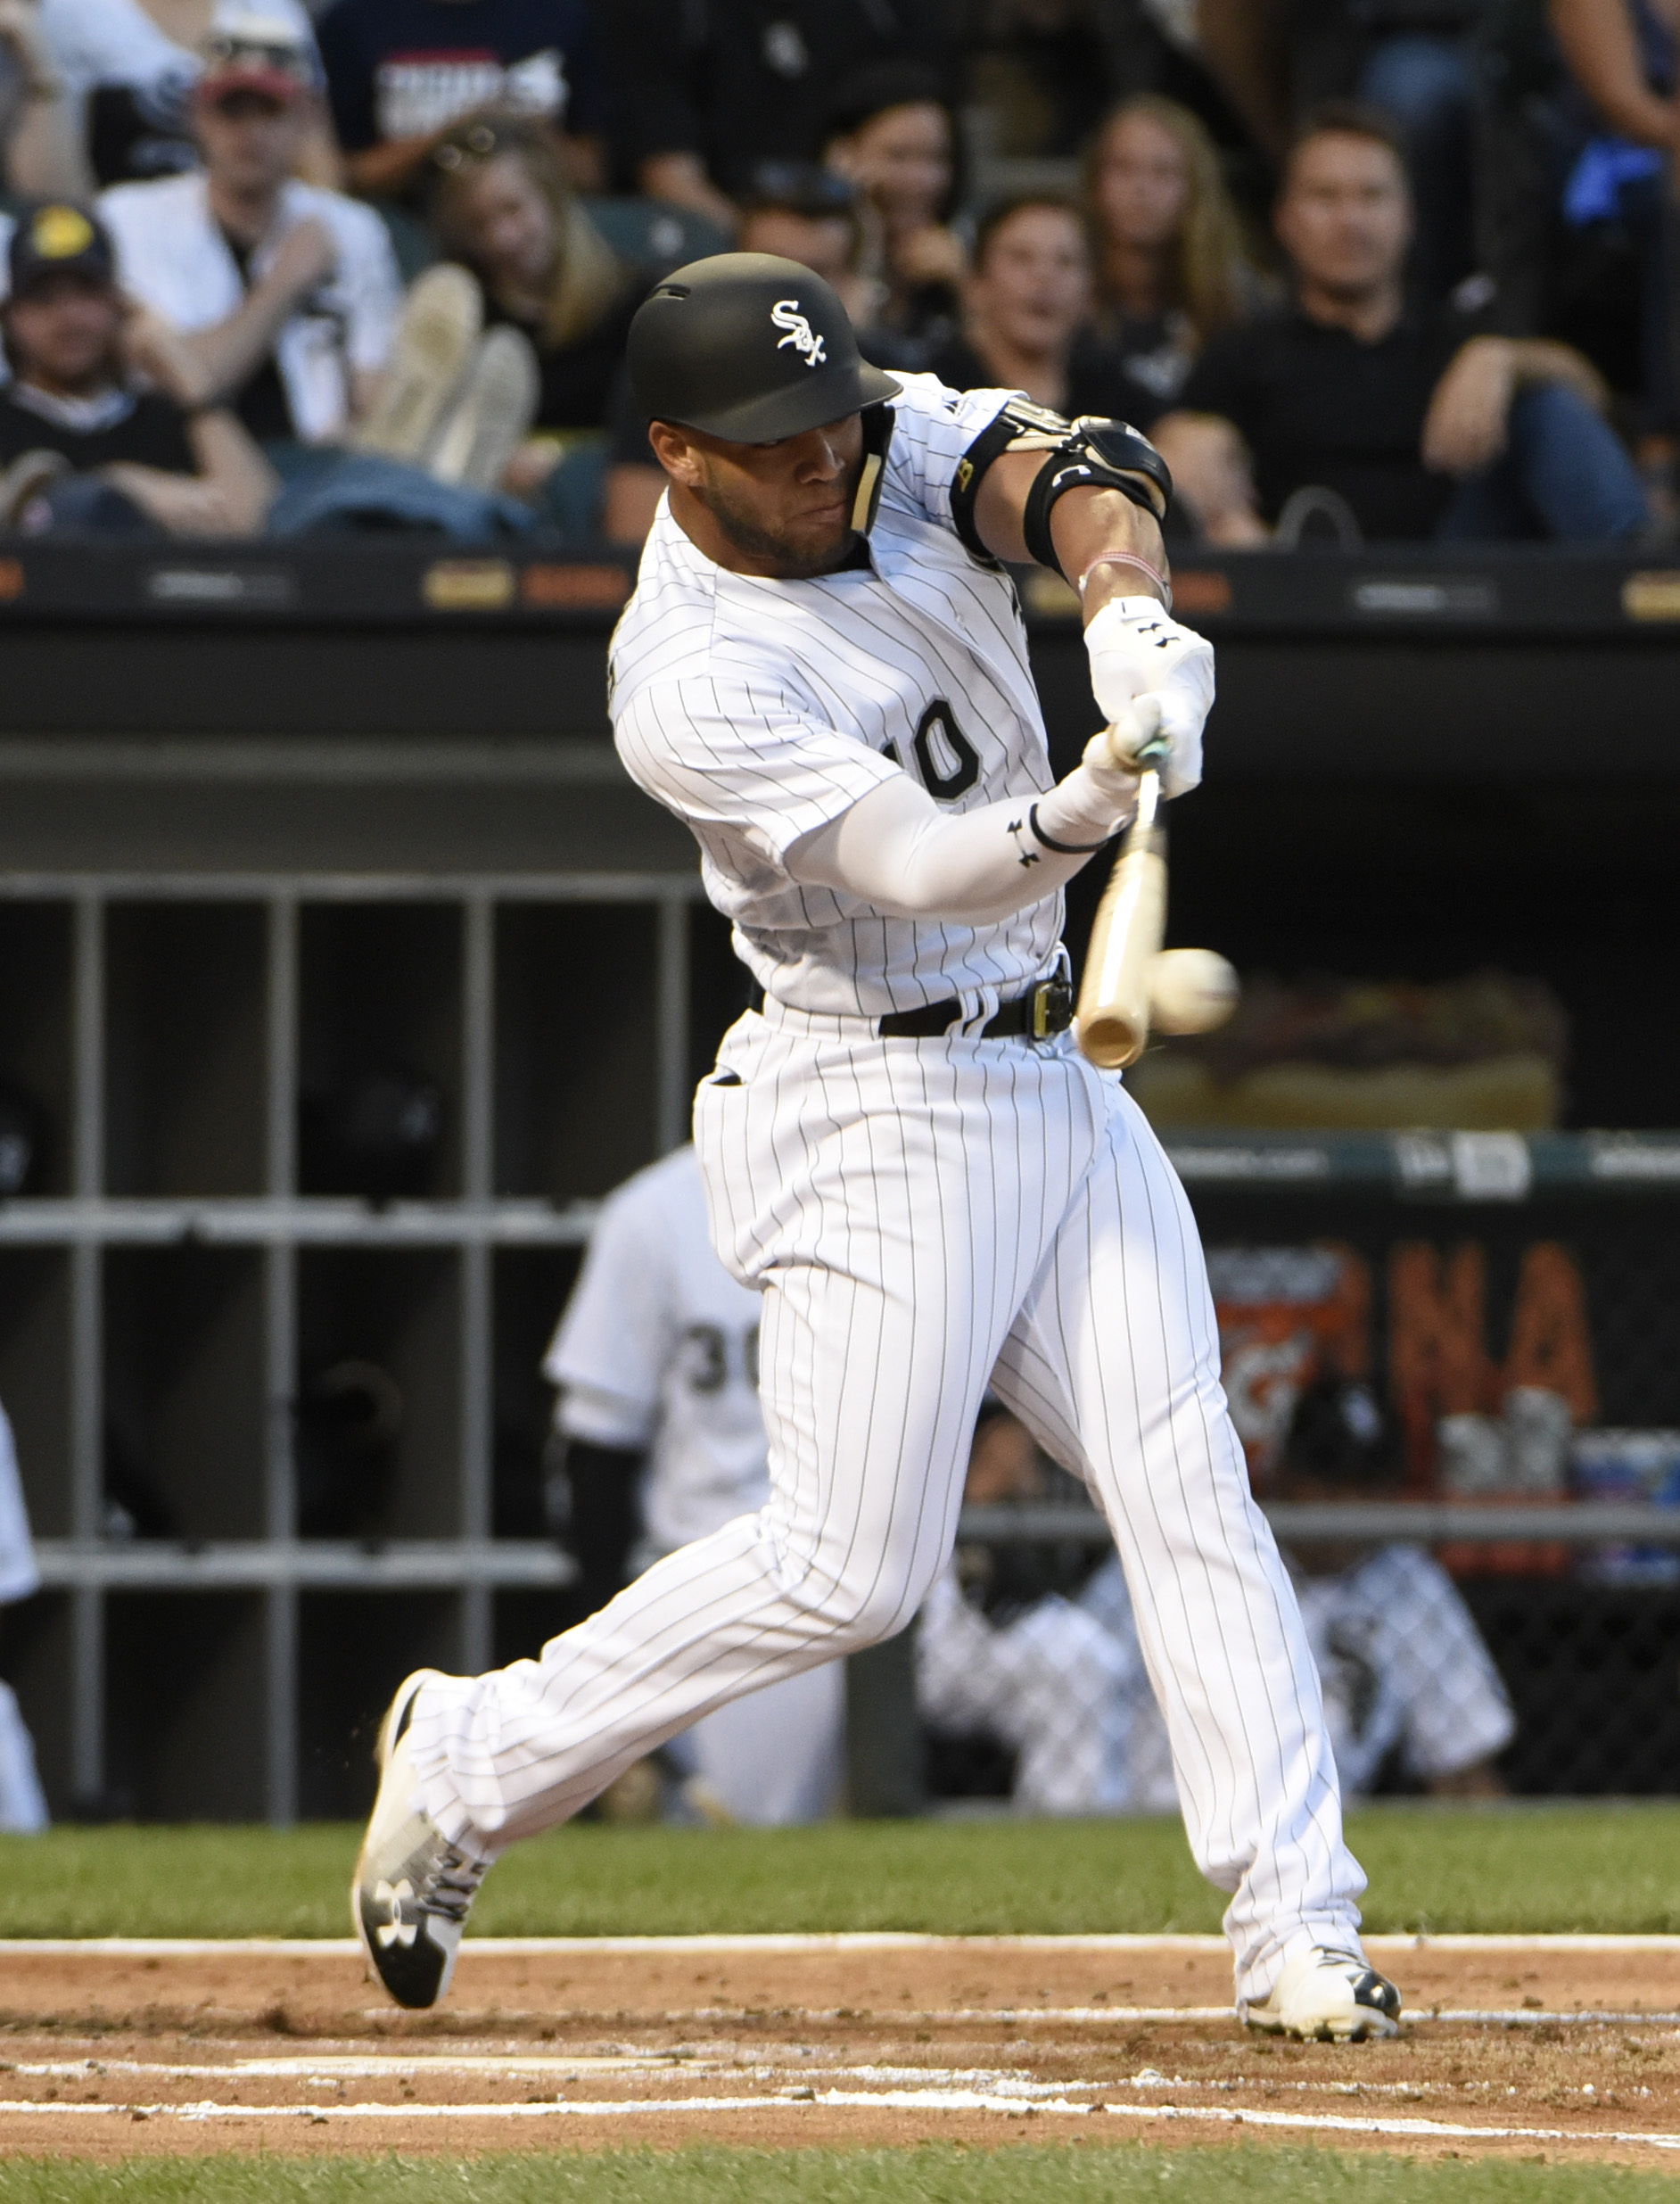 MLB: Houston Astros at Chicago White Sox